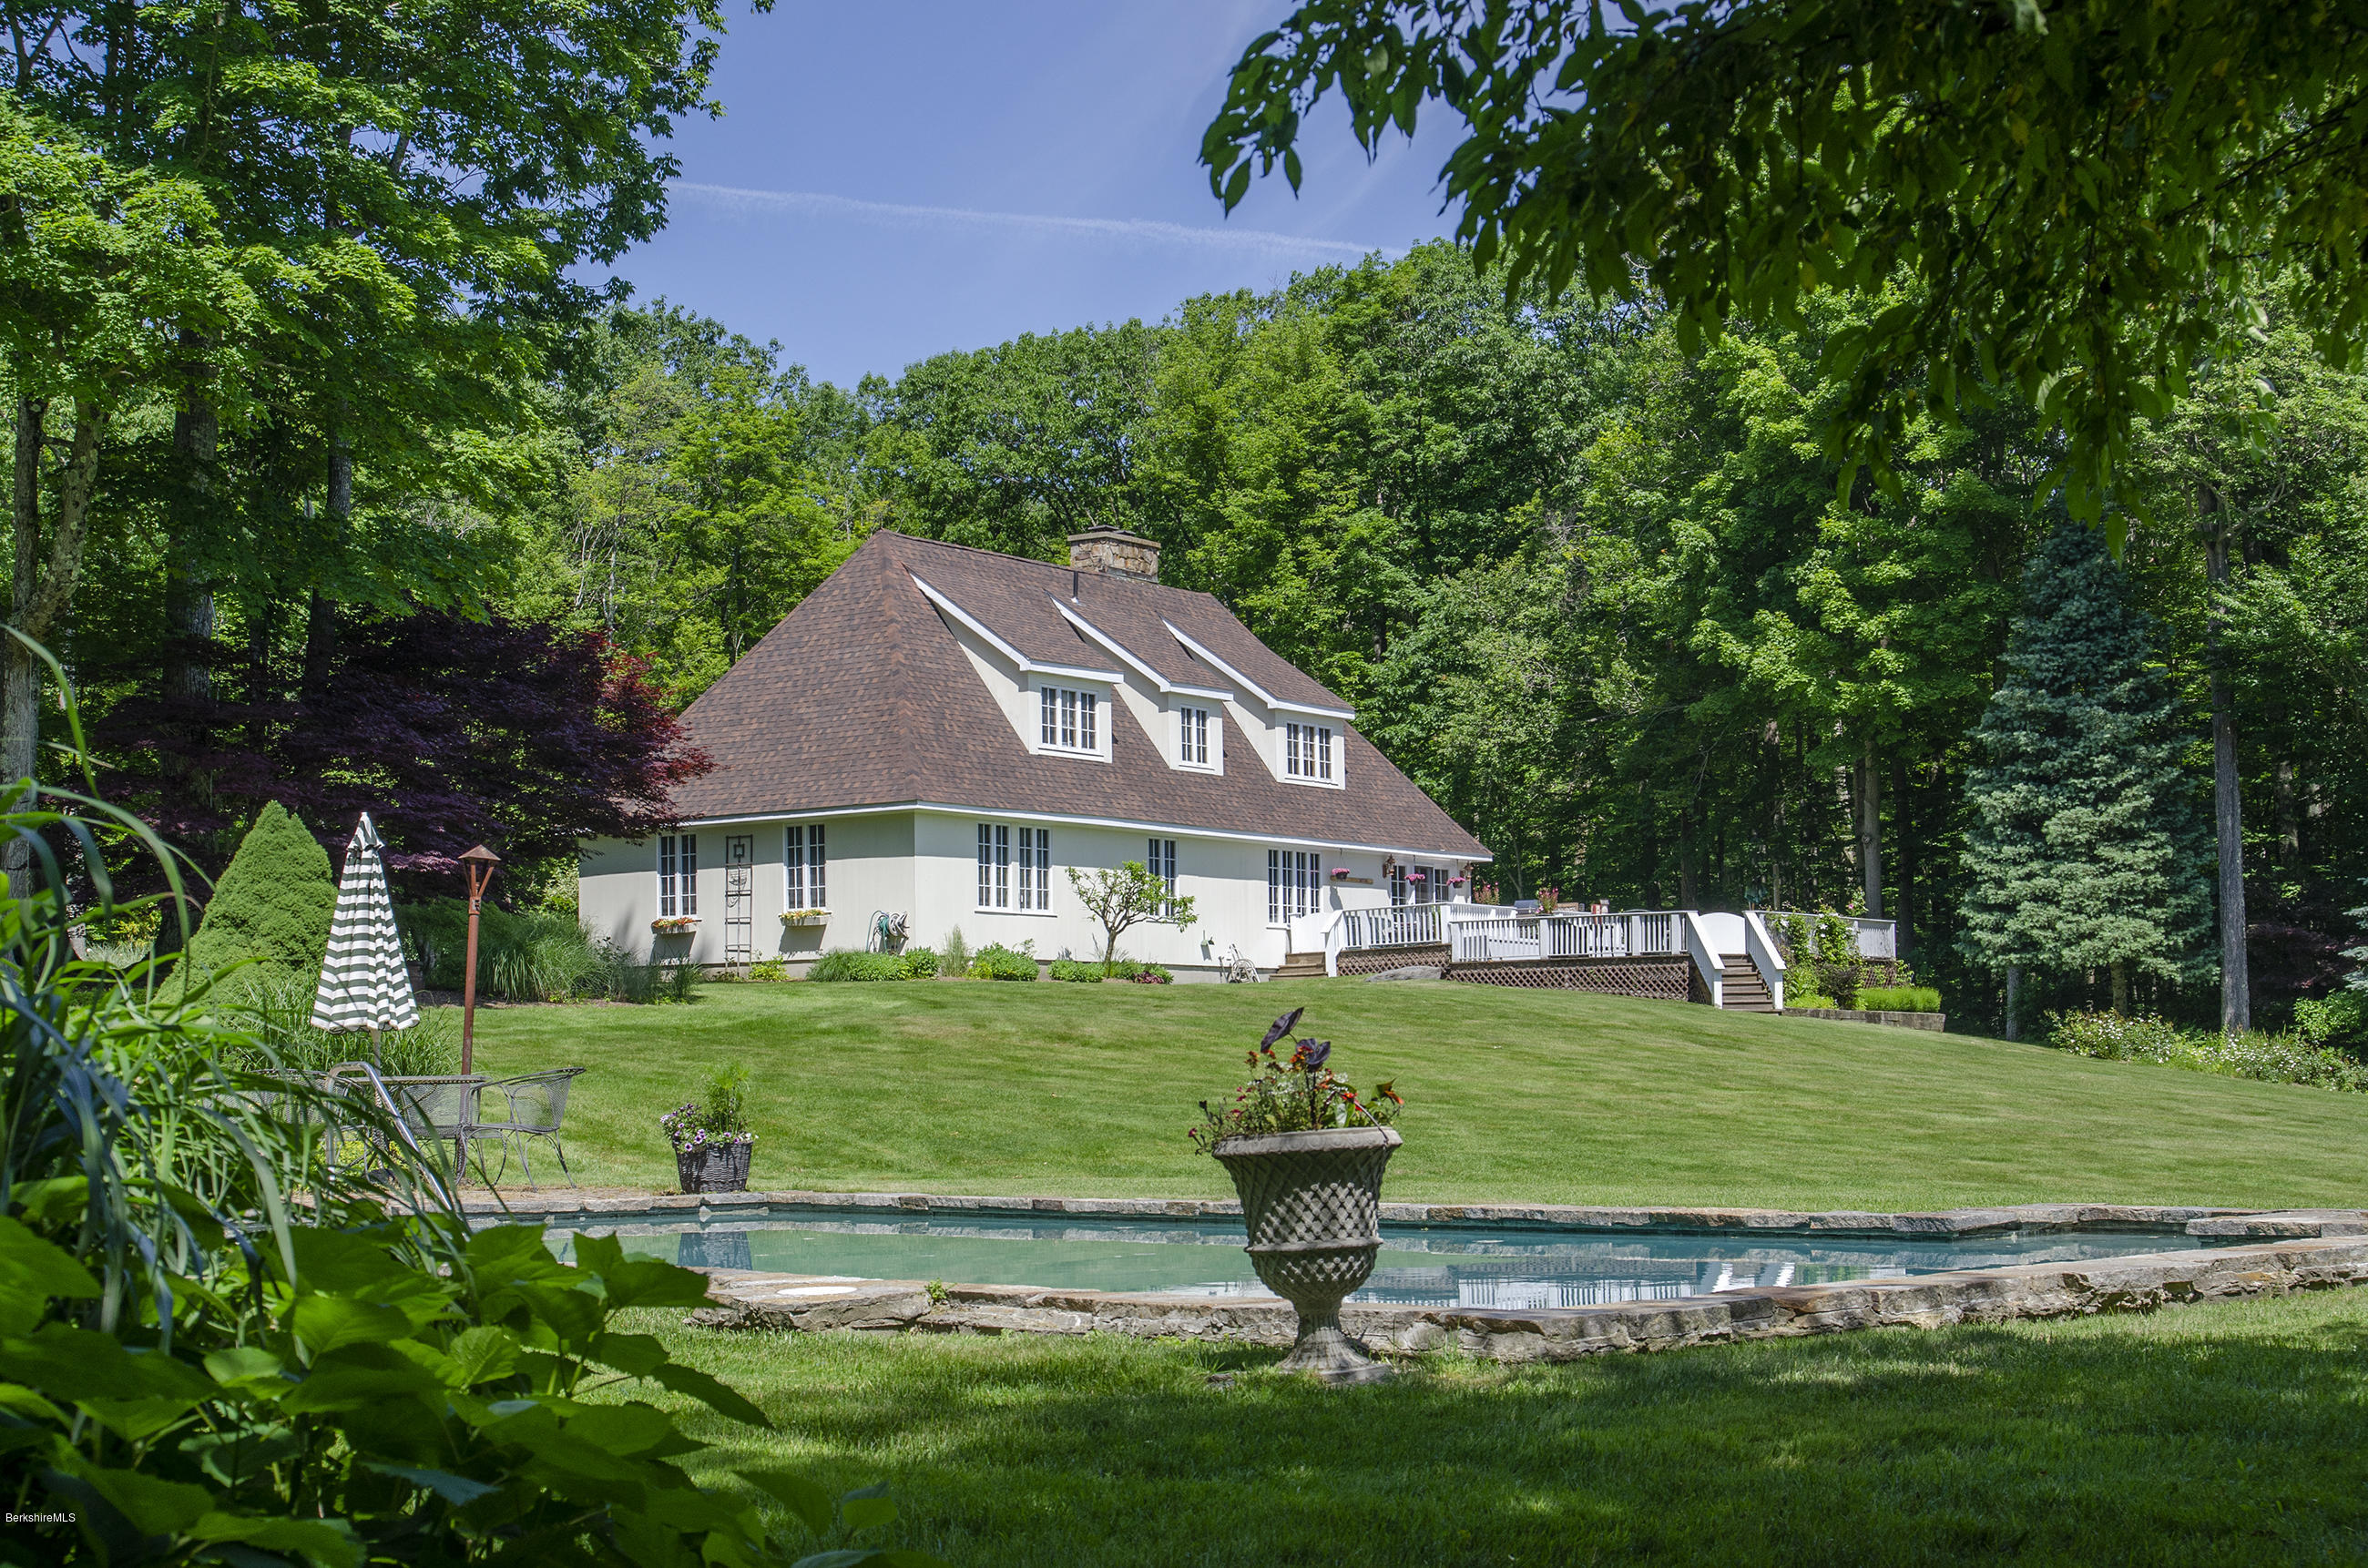 West Stockbridge Ma >> West Stockbridge Ma Real Estate West Stockbridge Ma Homes For Sale